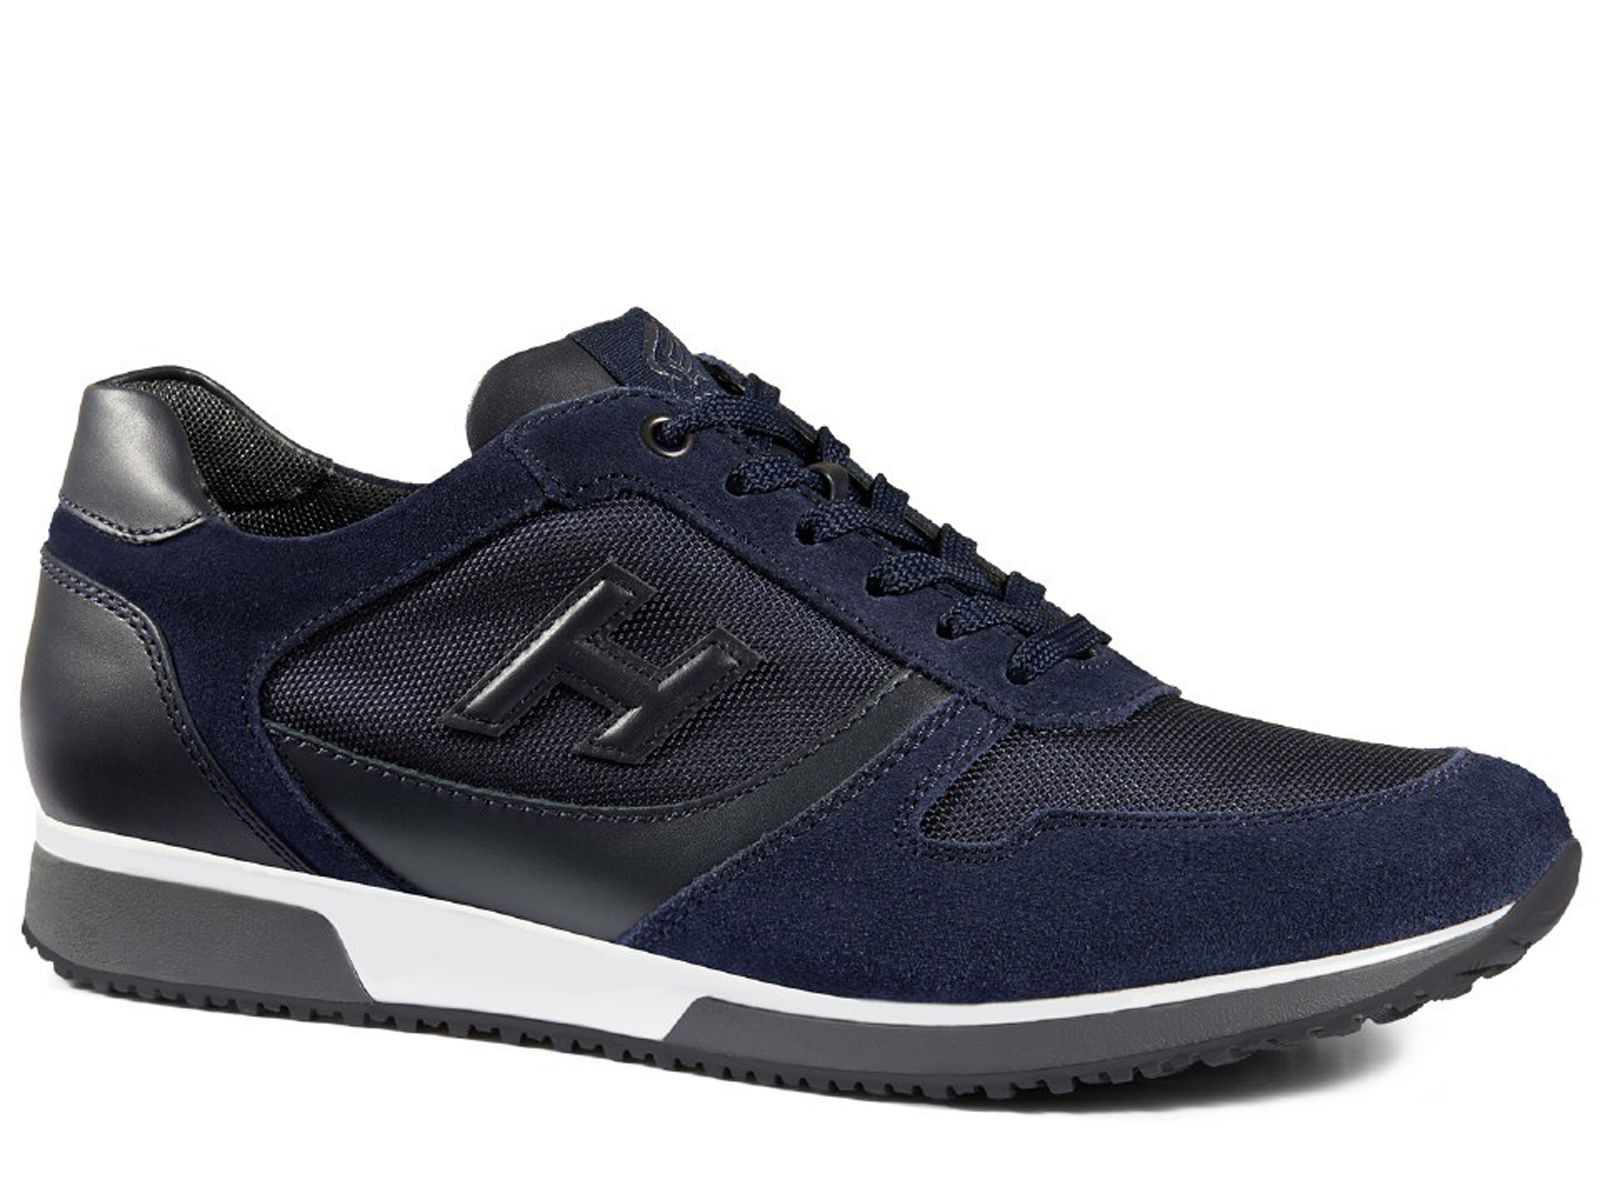 Hogan sneakers H198 in suede with